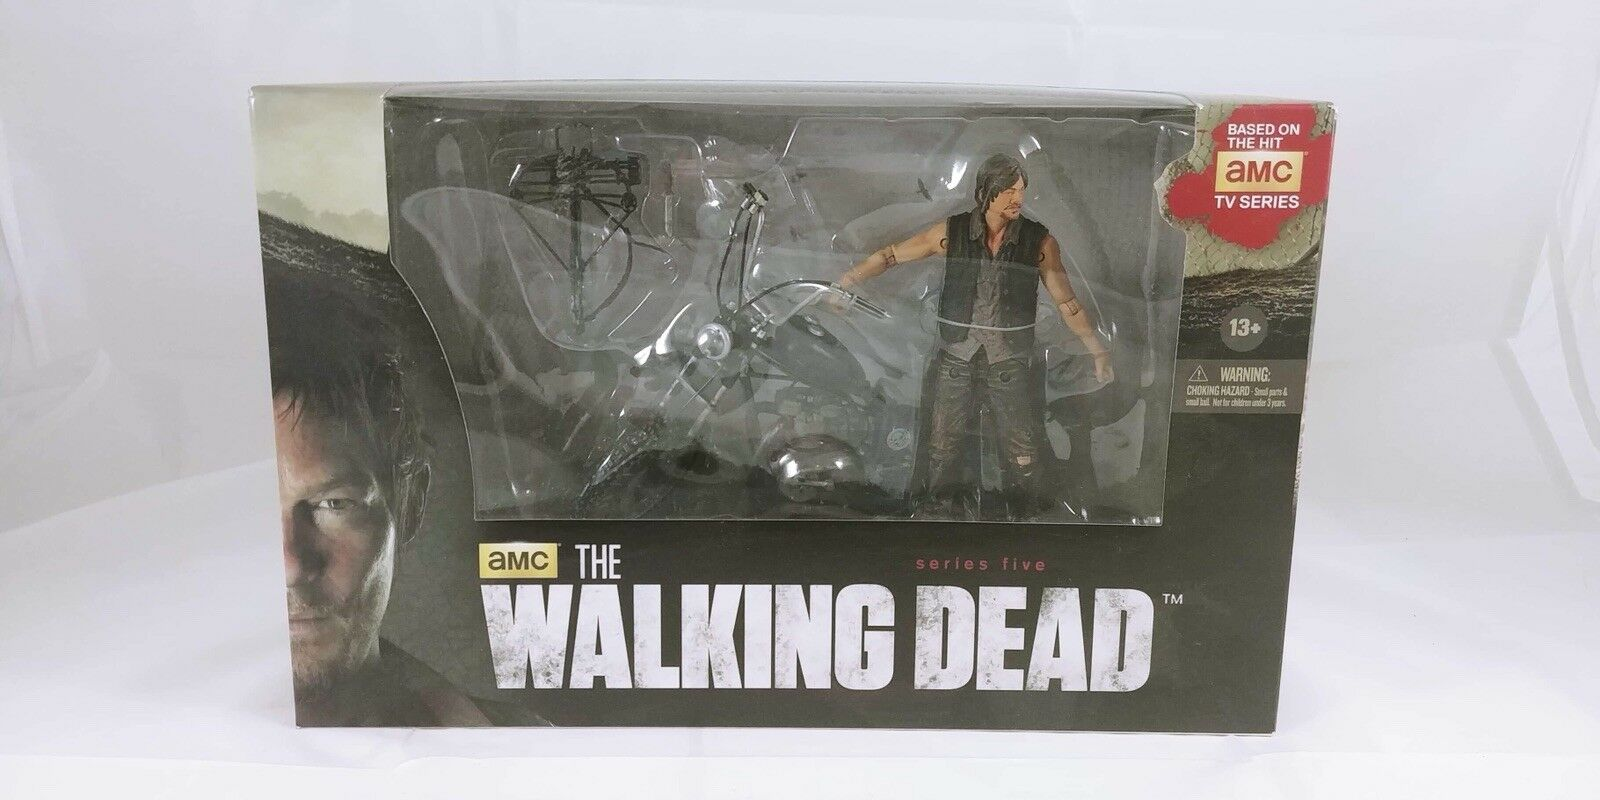 "The Walking Dead Daryl Dixon With Chopper Motorcycle 3.75"" AMC TV Action Figure"